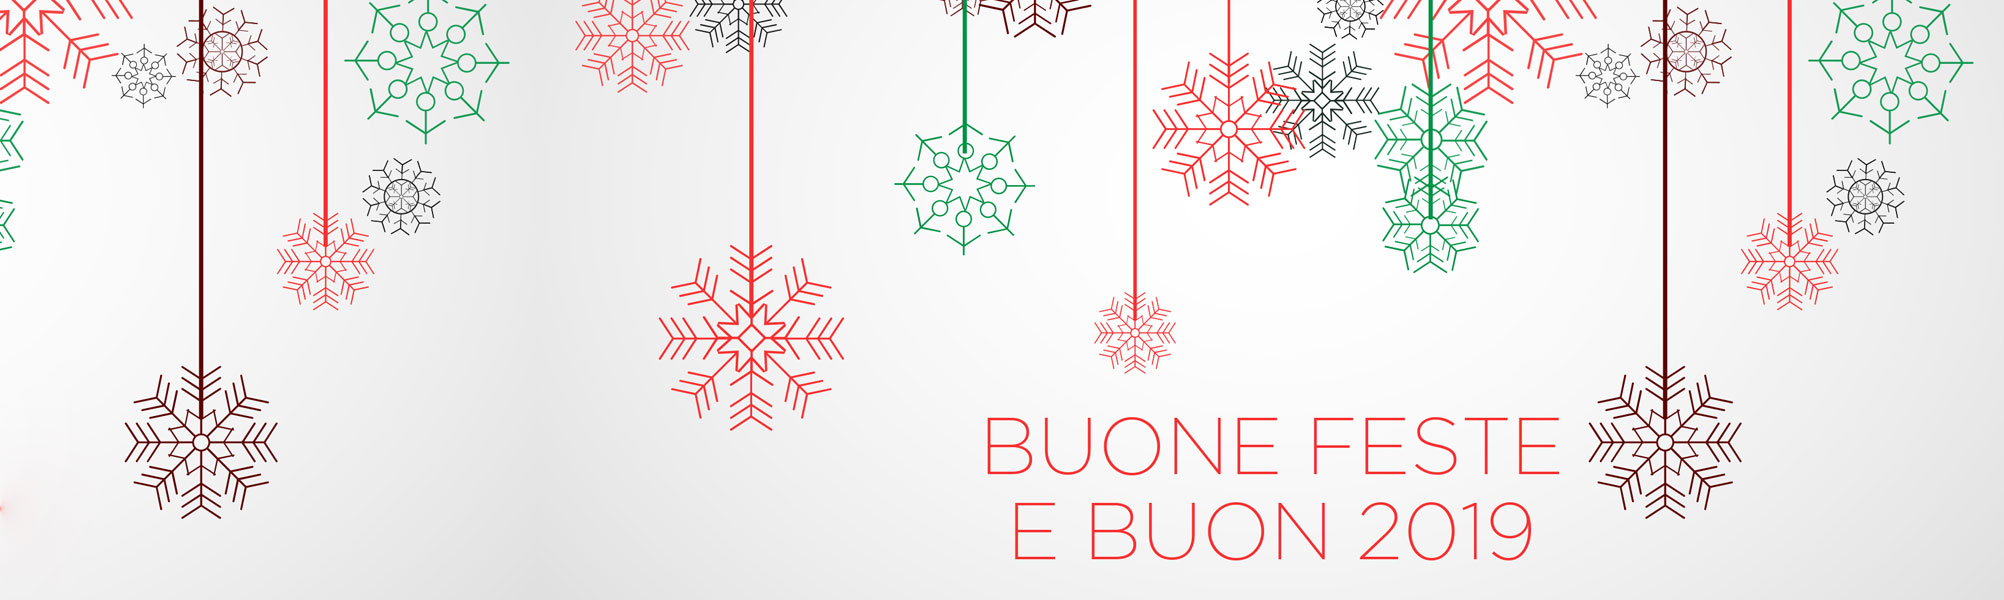 Buone Feste e Buon 2019 da CG Entertainment!